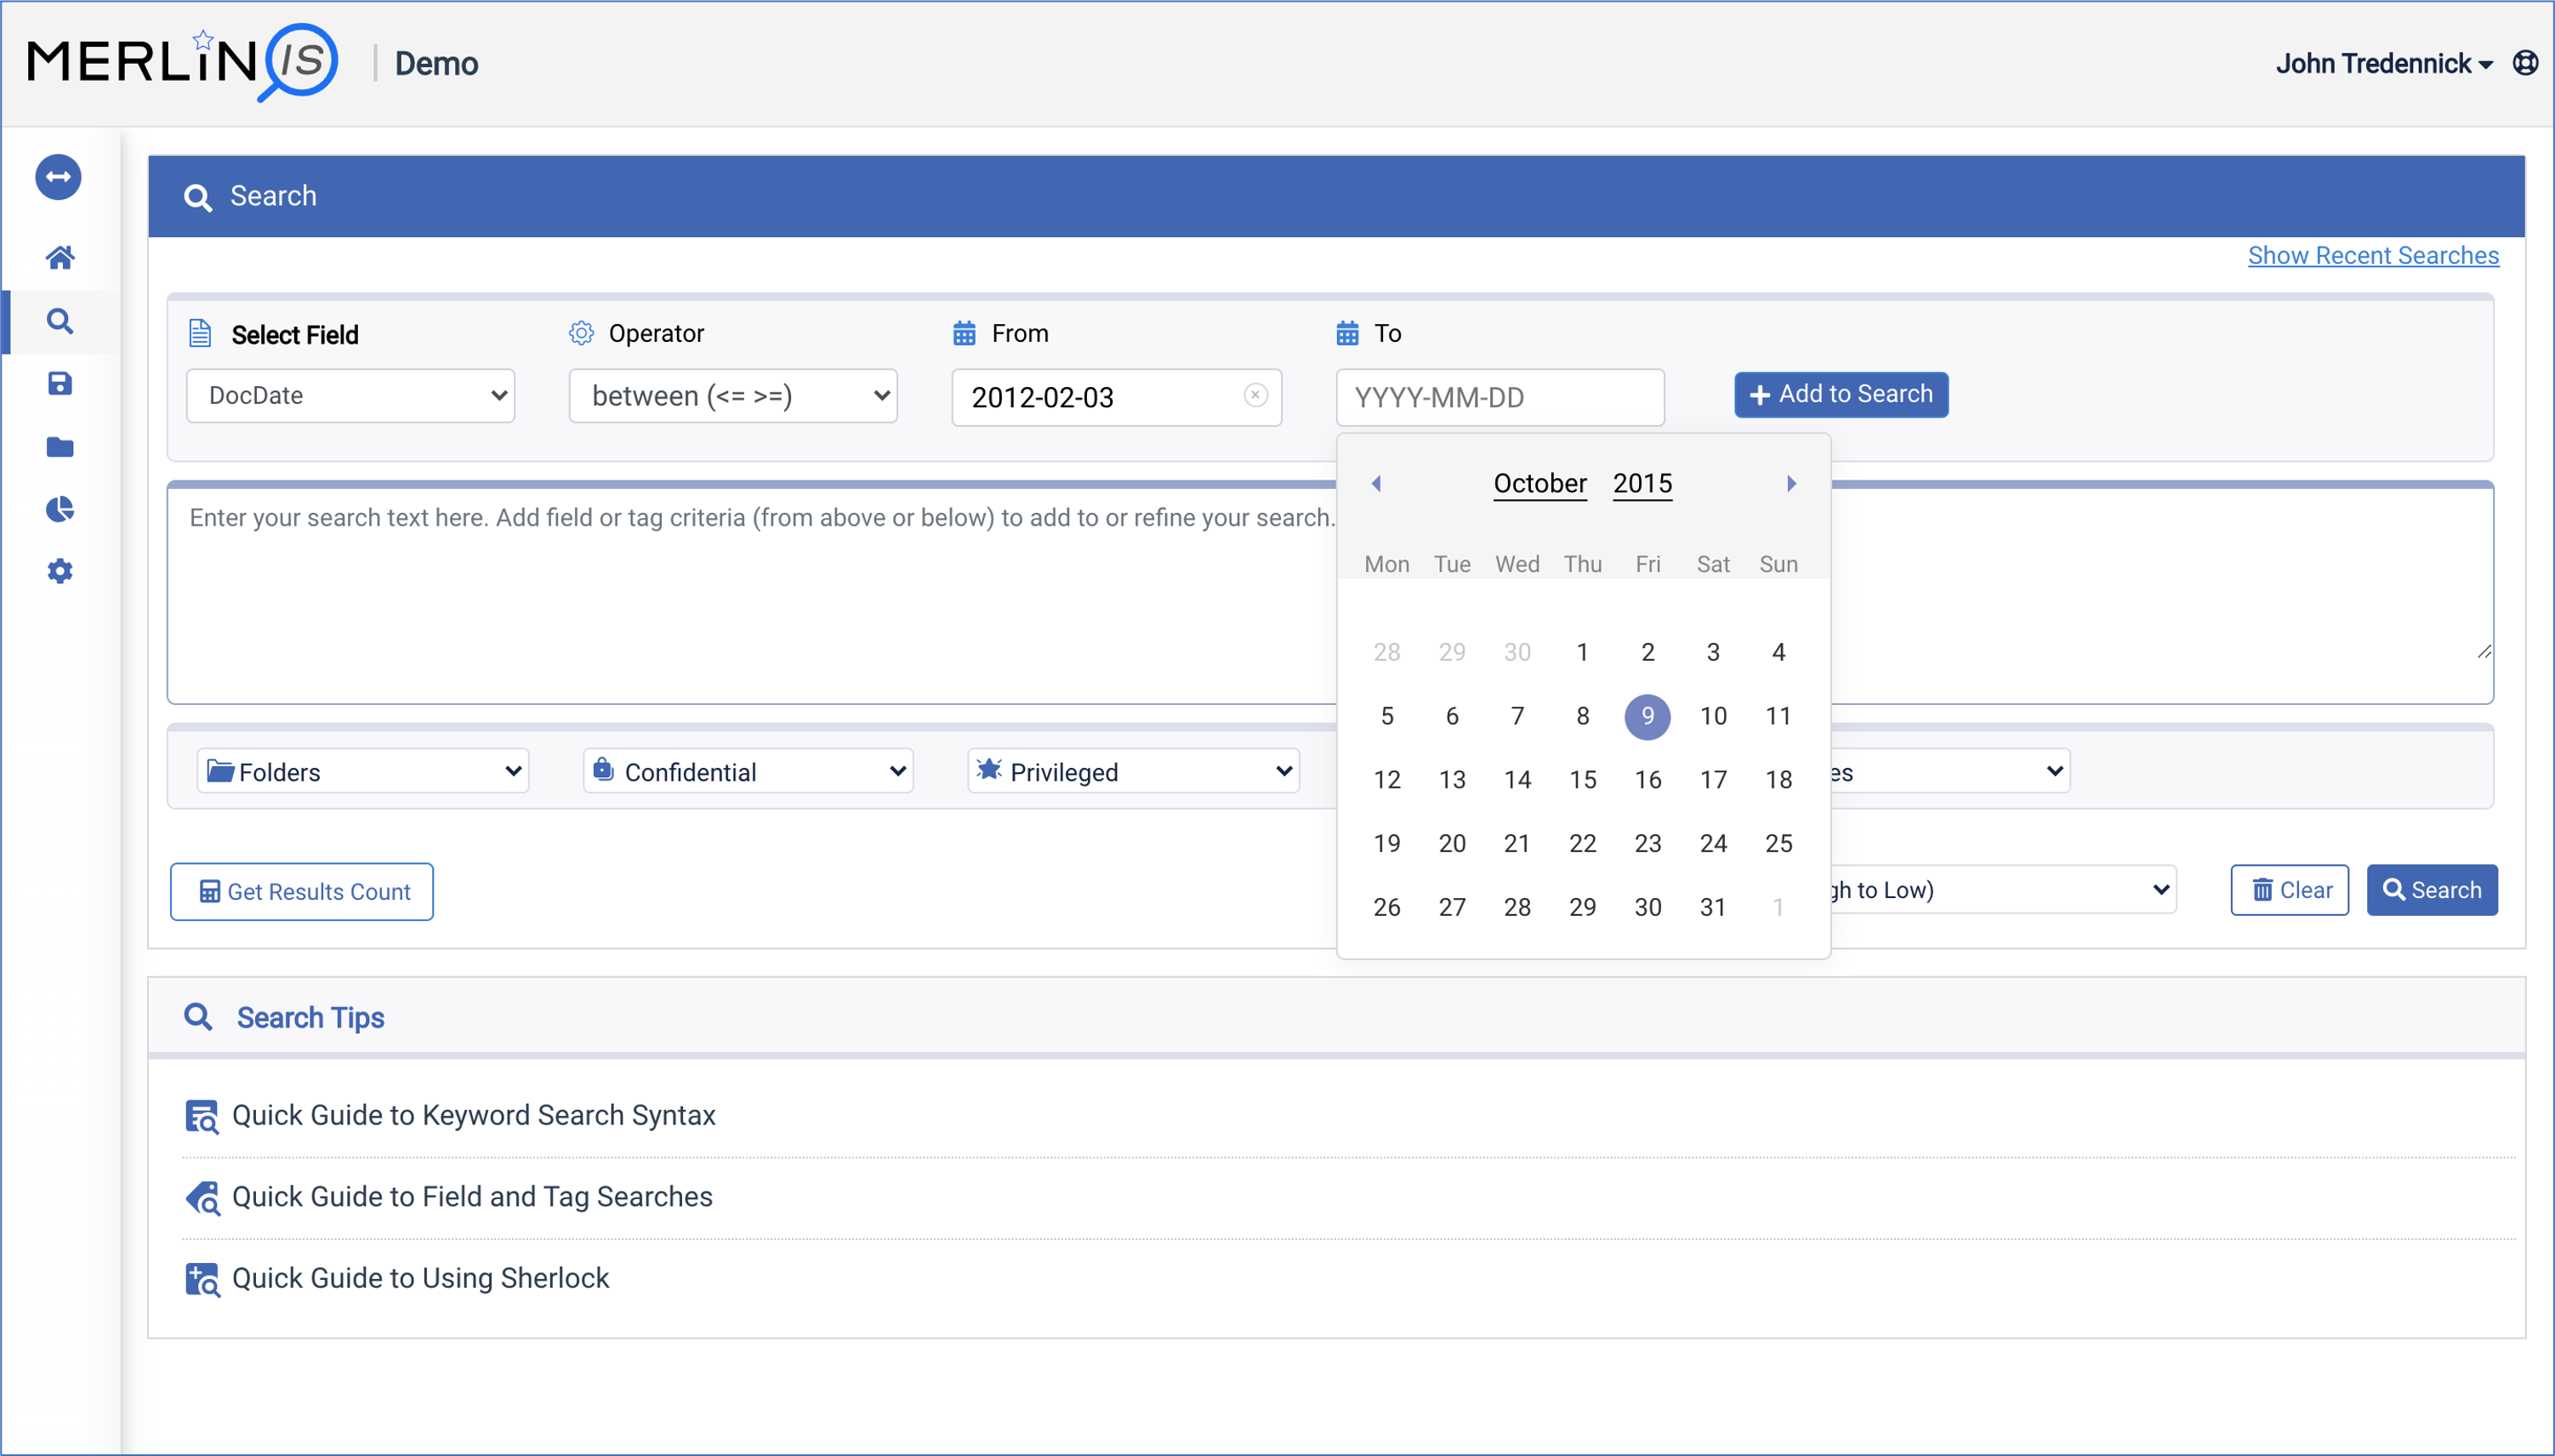 Building a date range search